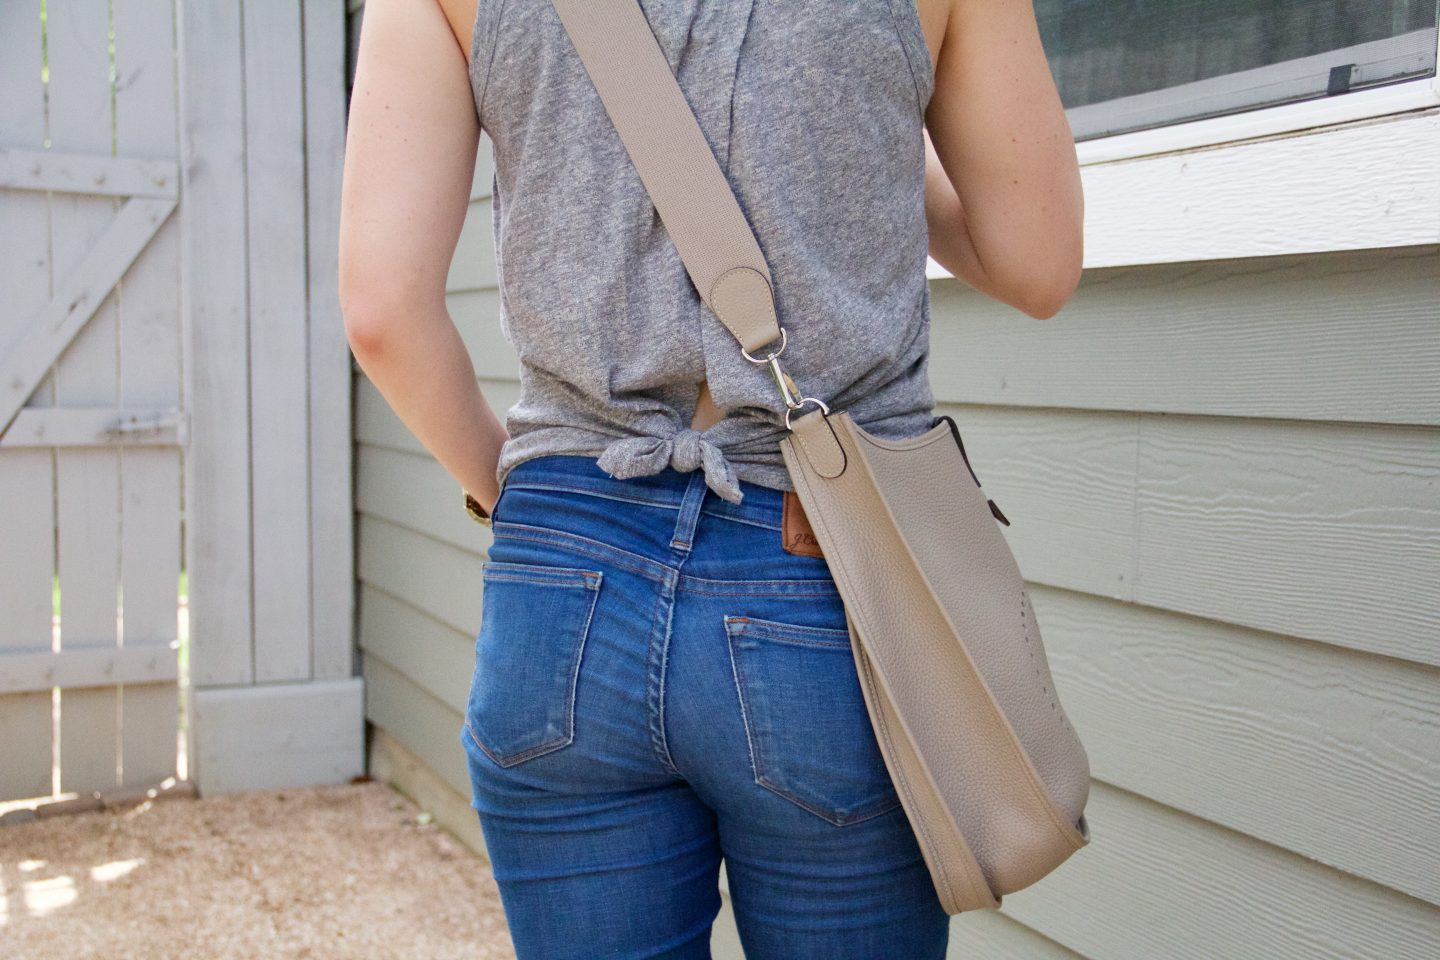 J.crew Knot-back Tank Top And How To Wear It. Wearing Tees